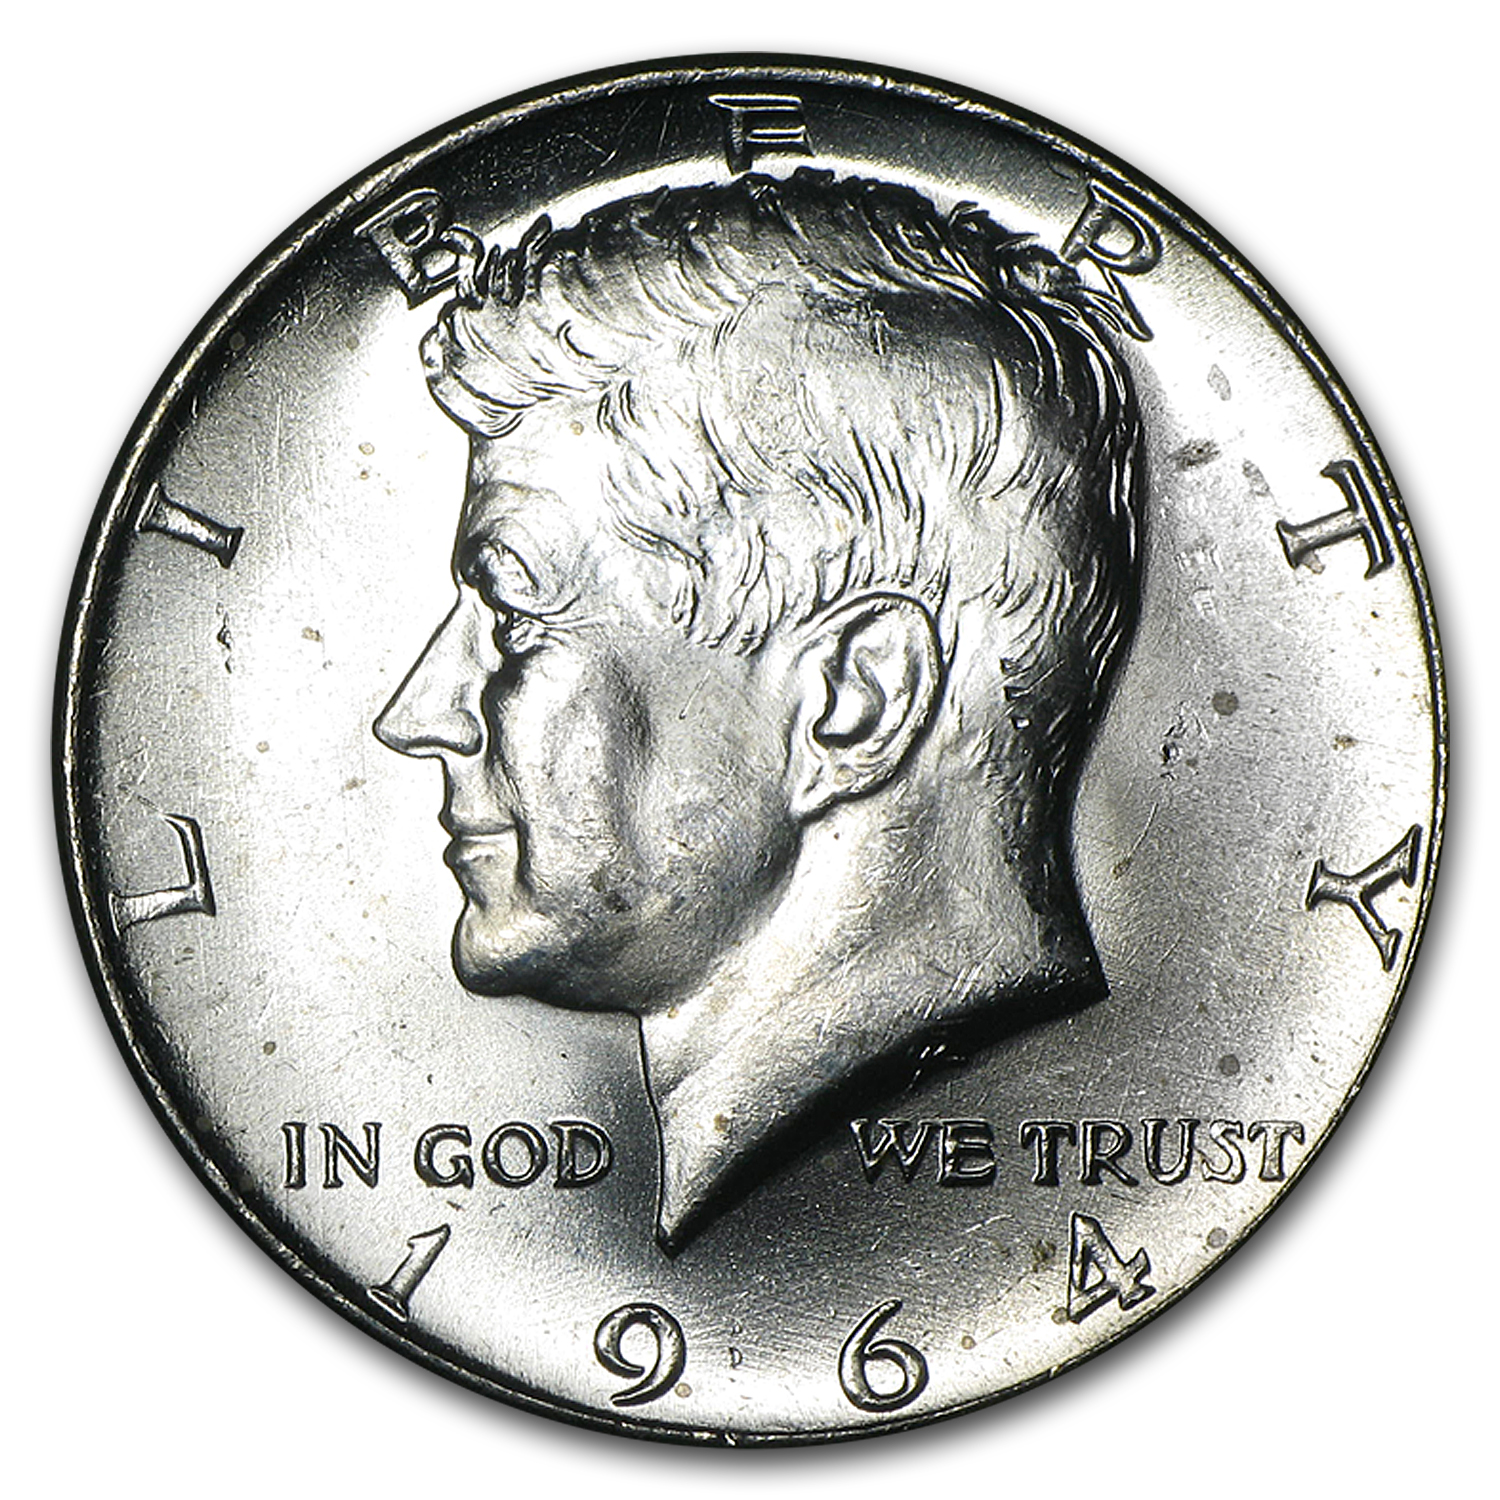 90% Silver Kennedy Half-Dollars $100 Face-Value Bag BU (1964)